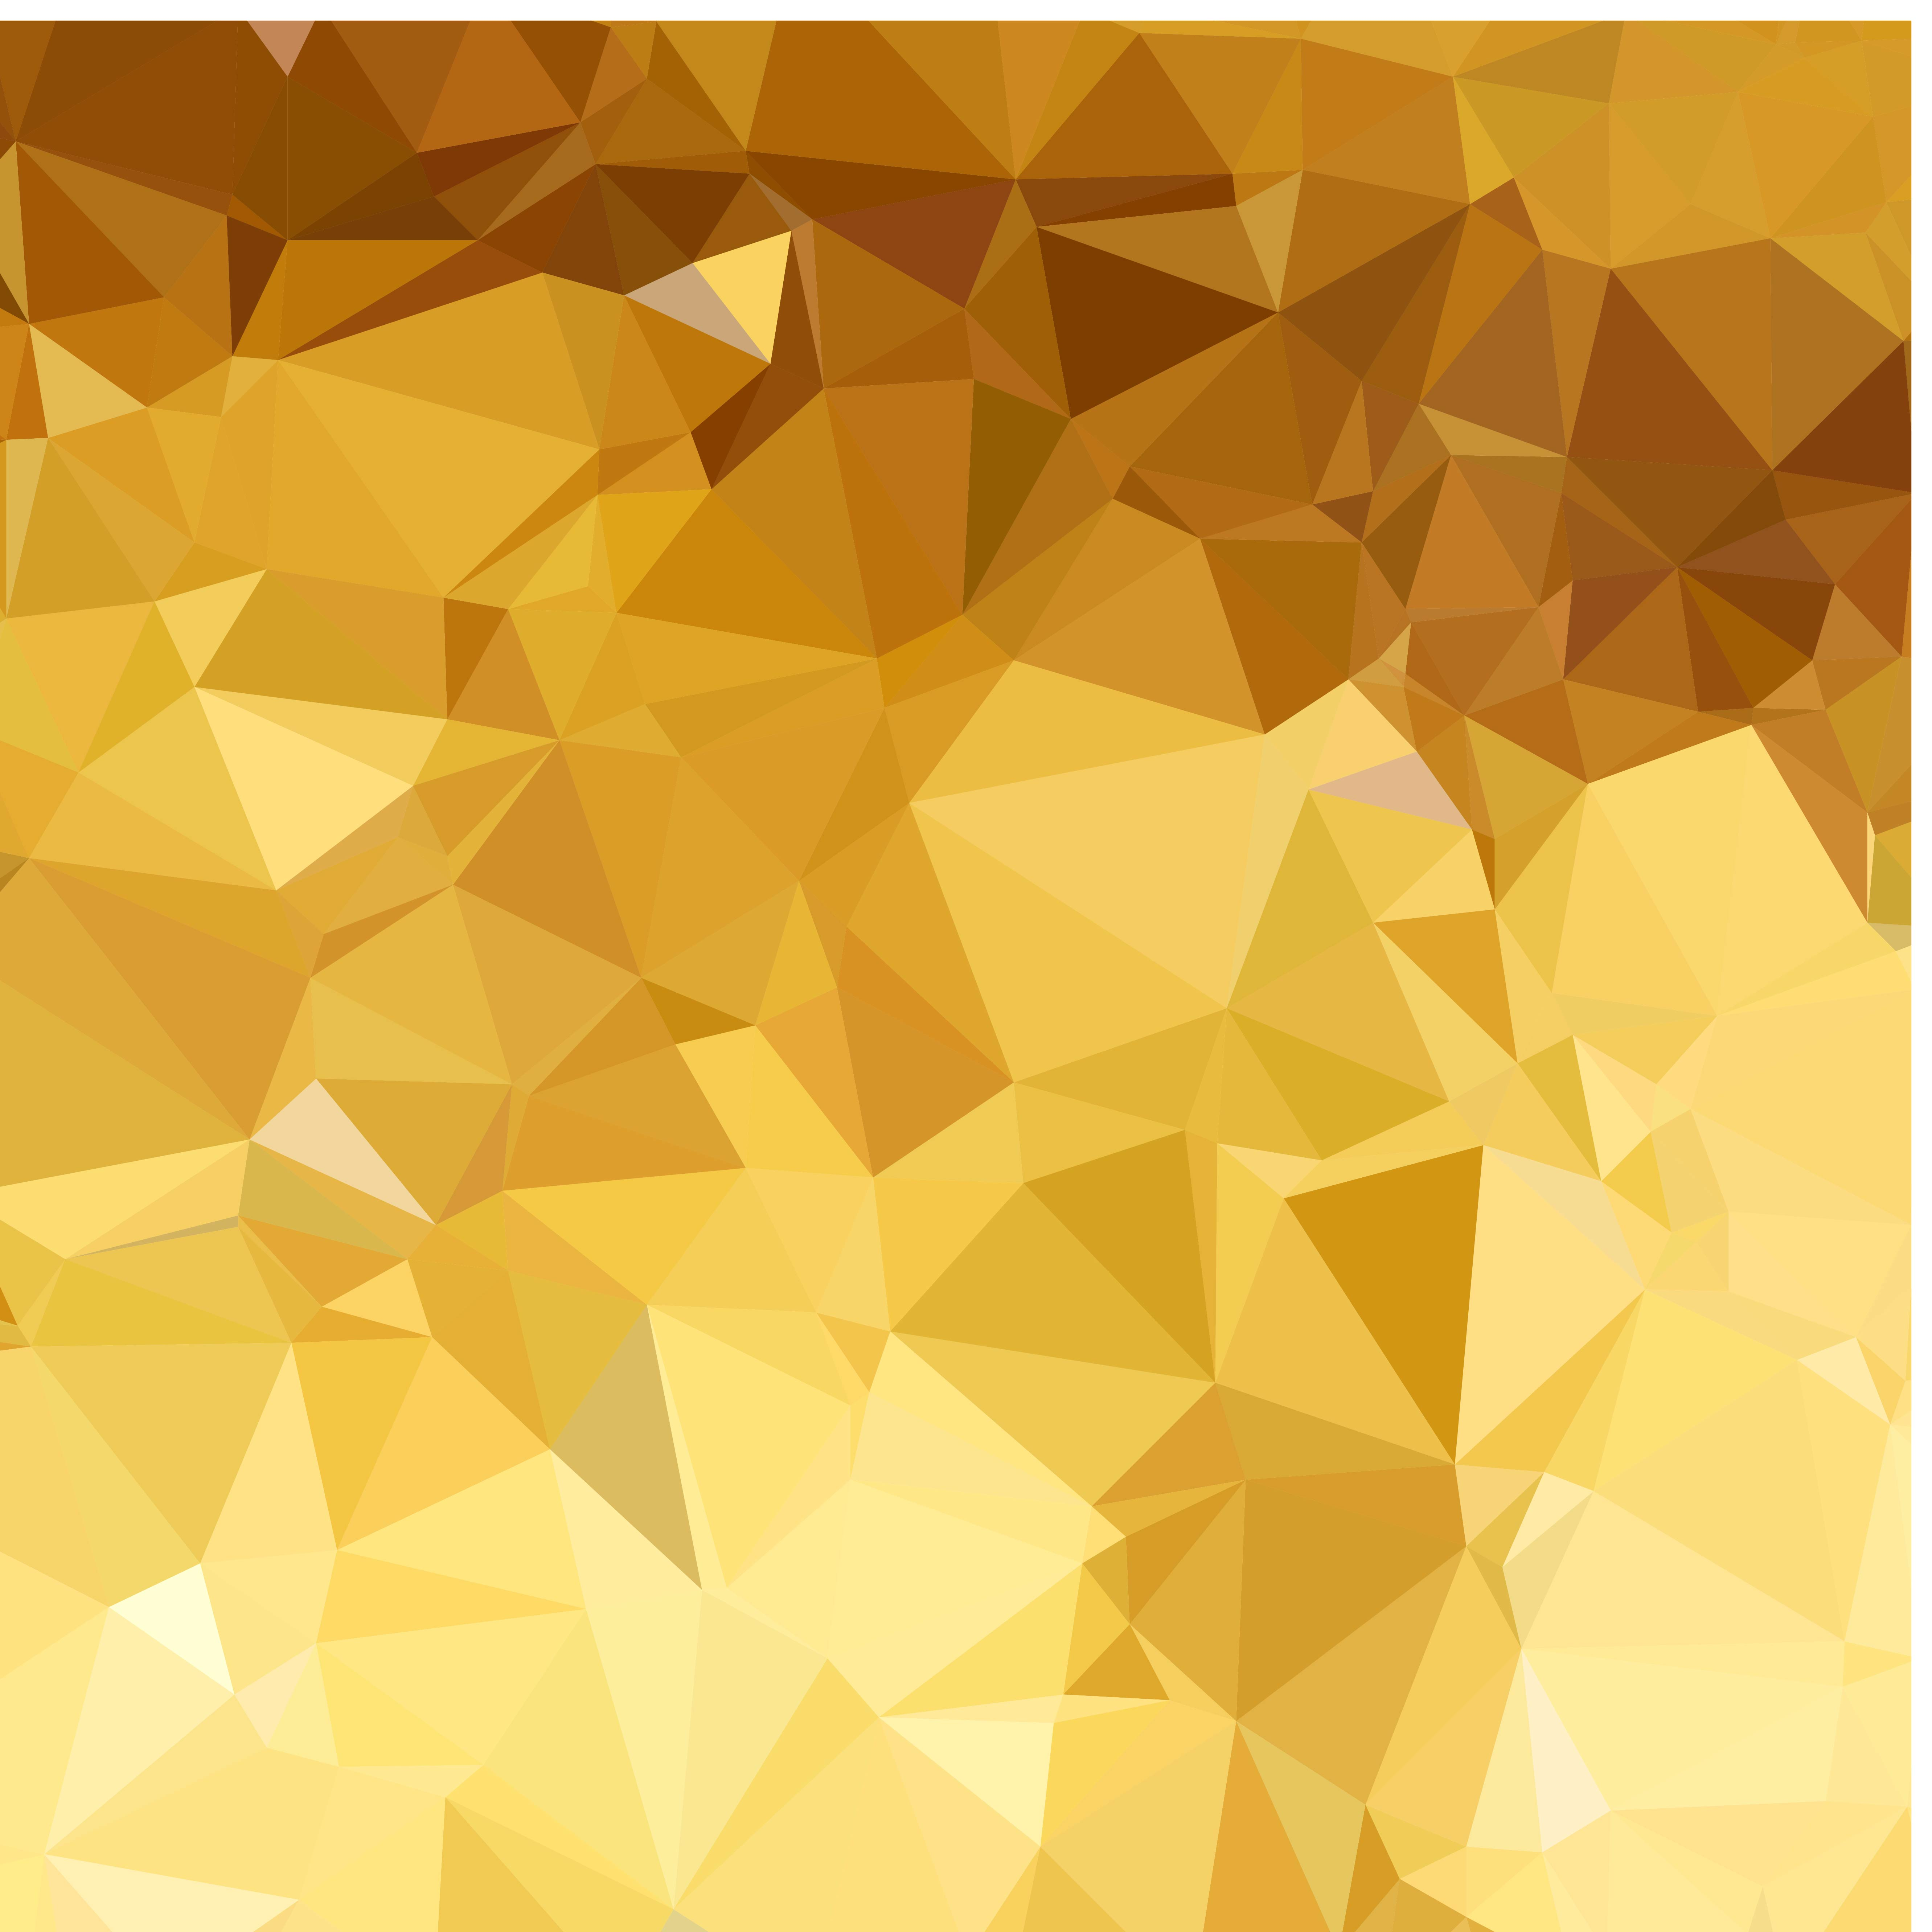 gold polygon abstract background vector material  gold  polygon  hexagon background image for